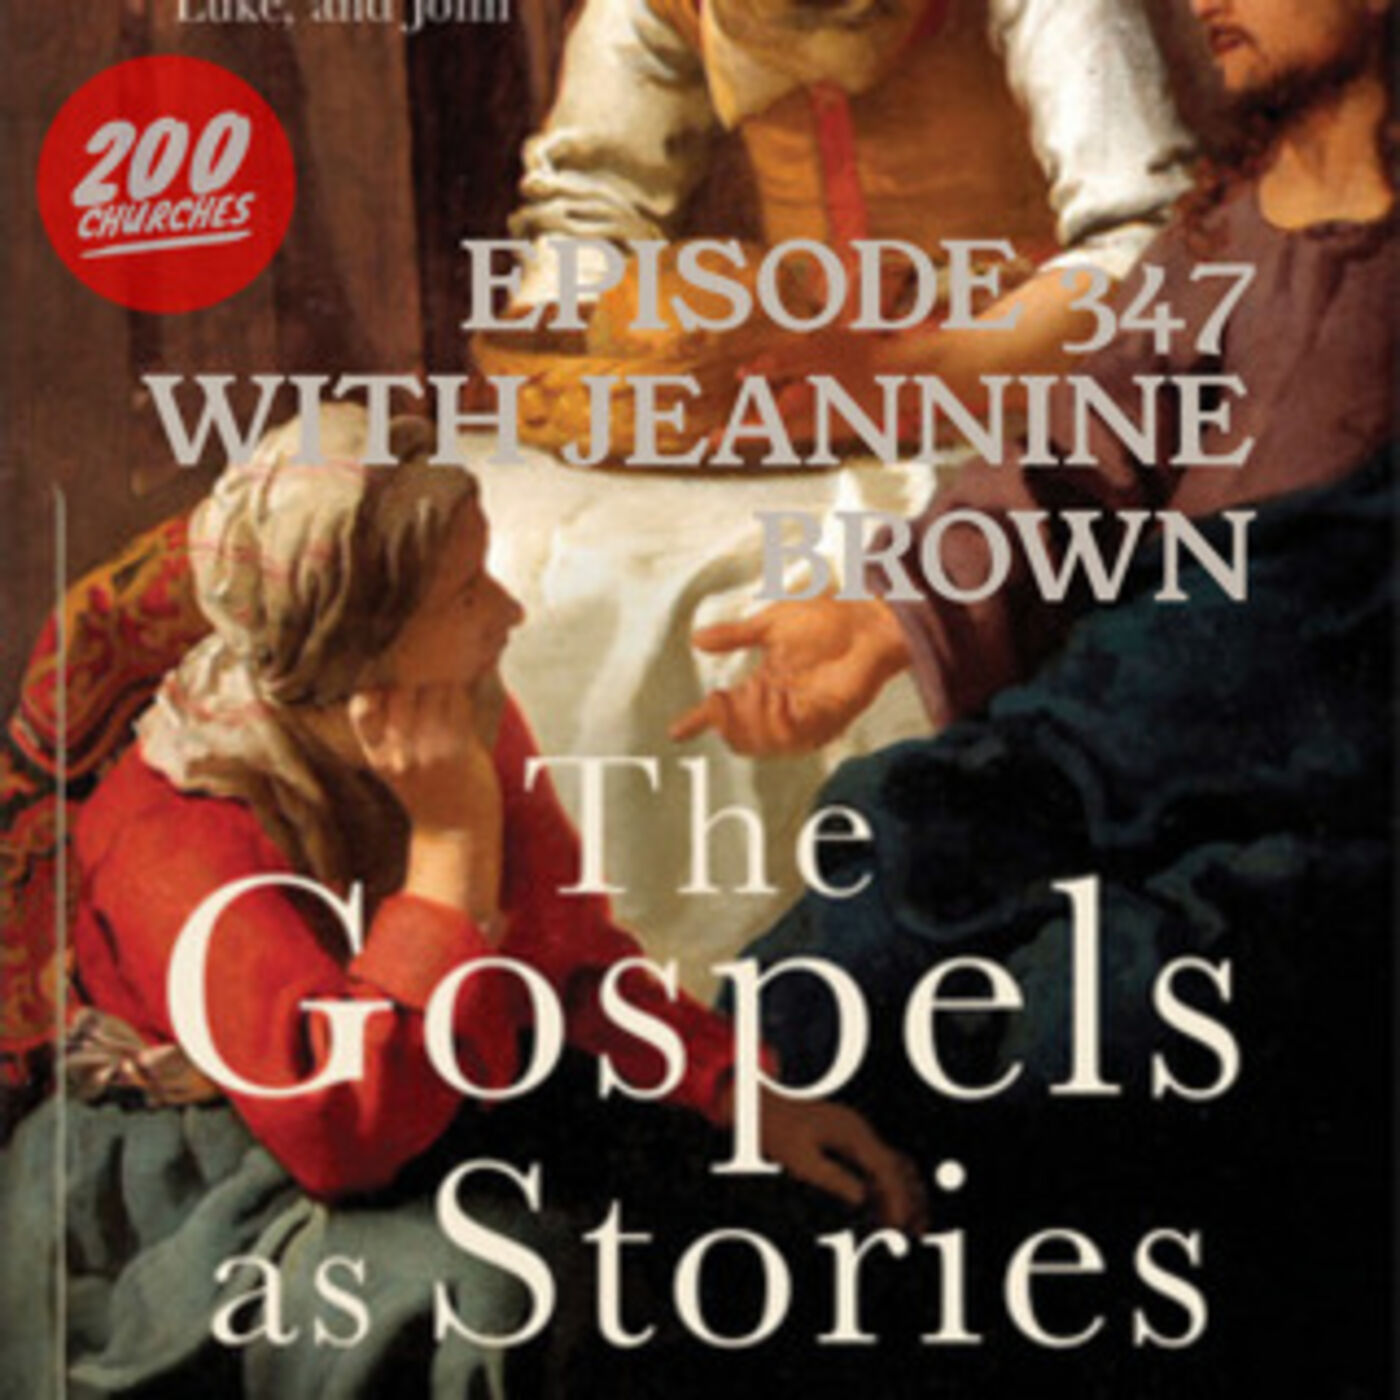 Episode 347 - The Gospels as Stories with Jeannine Brown